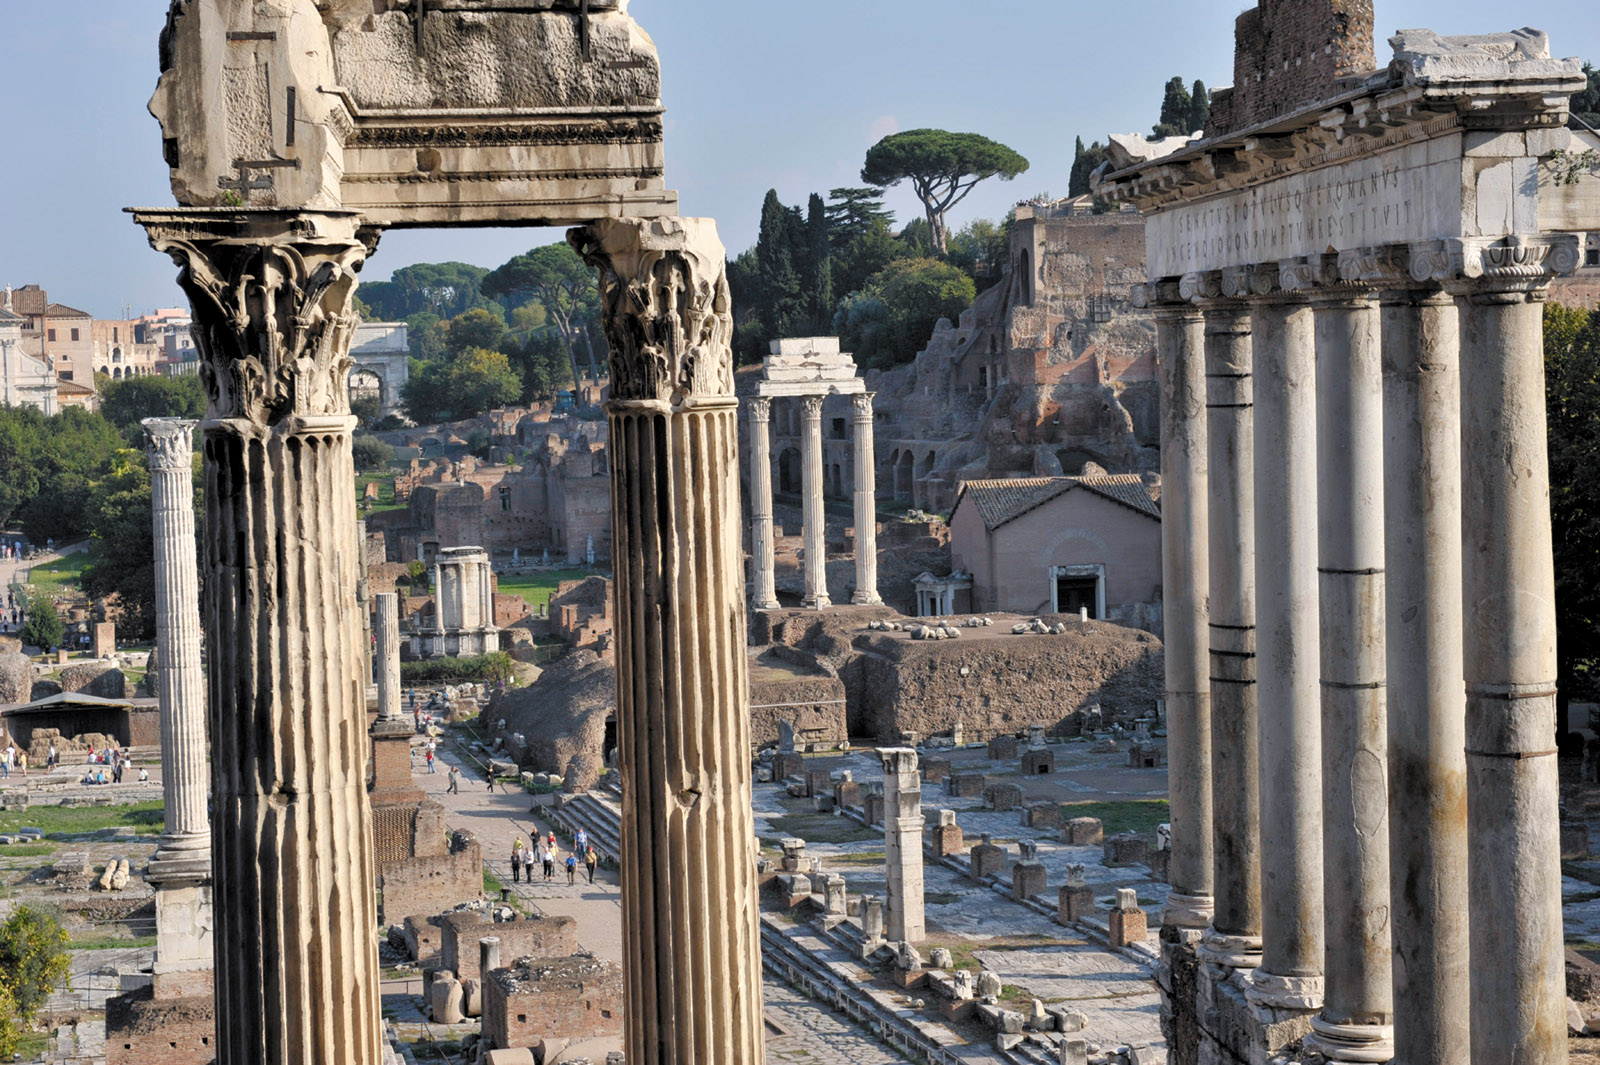 The Roman Forum in 2008, looking east toward the Arch of Titus, with the remains of the Temple of Saturn (right), the Temple of Castor and Pollux (center, with three columns), and the Temple of Vespasian (foreground); the Palatine Hill rises to the right